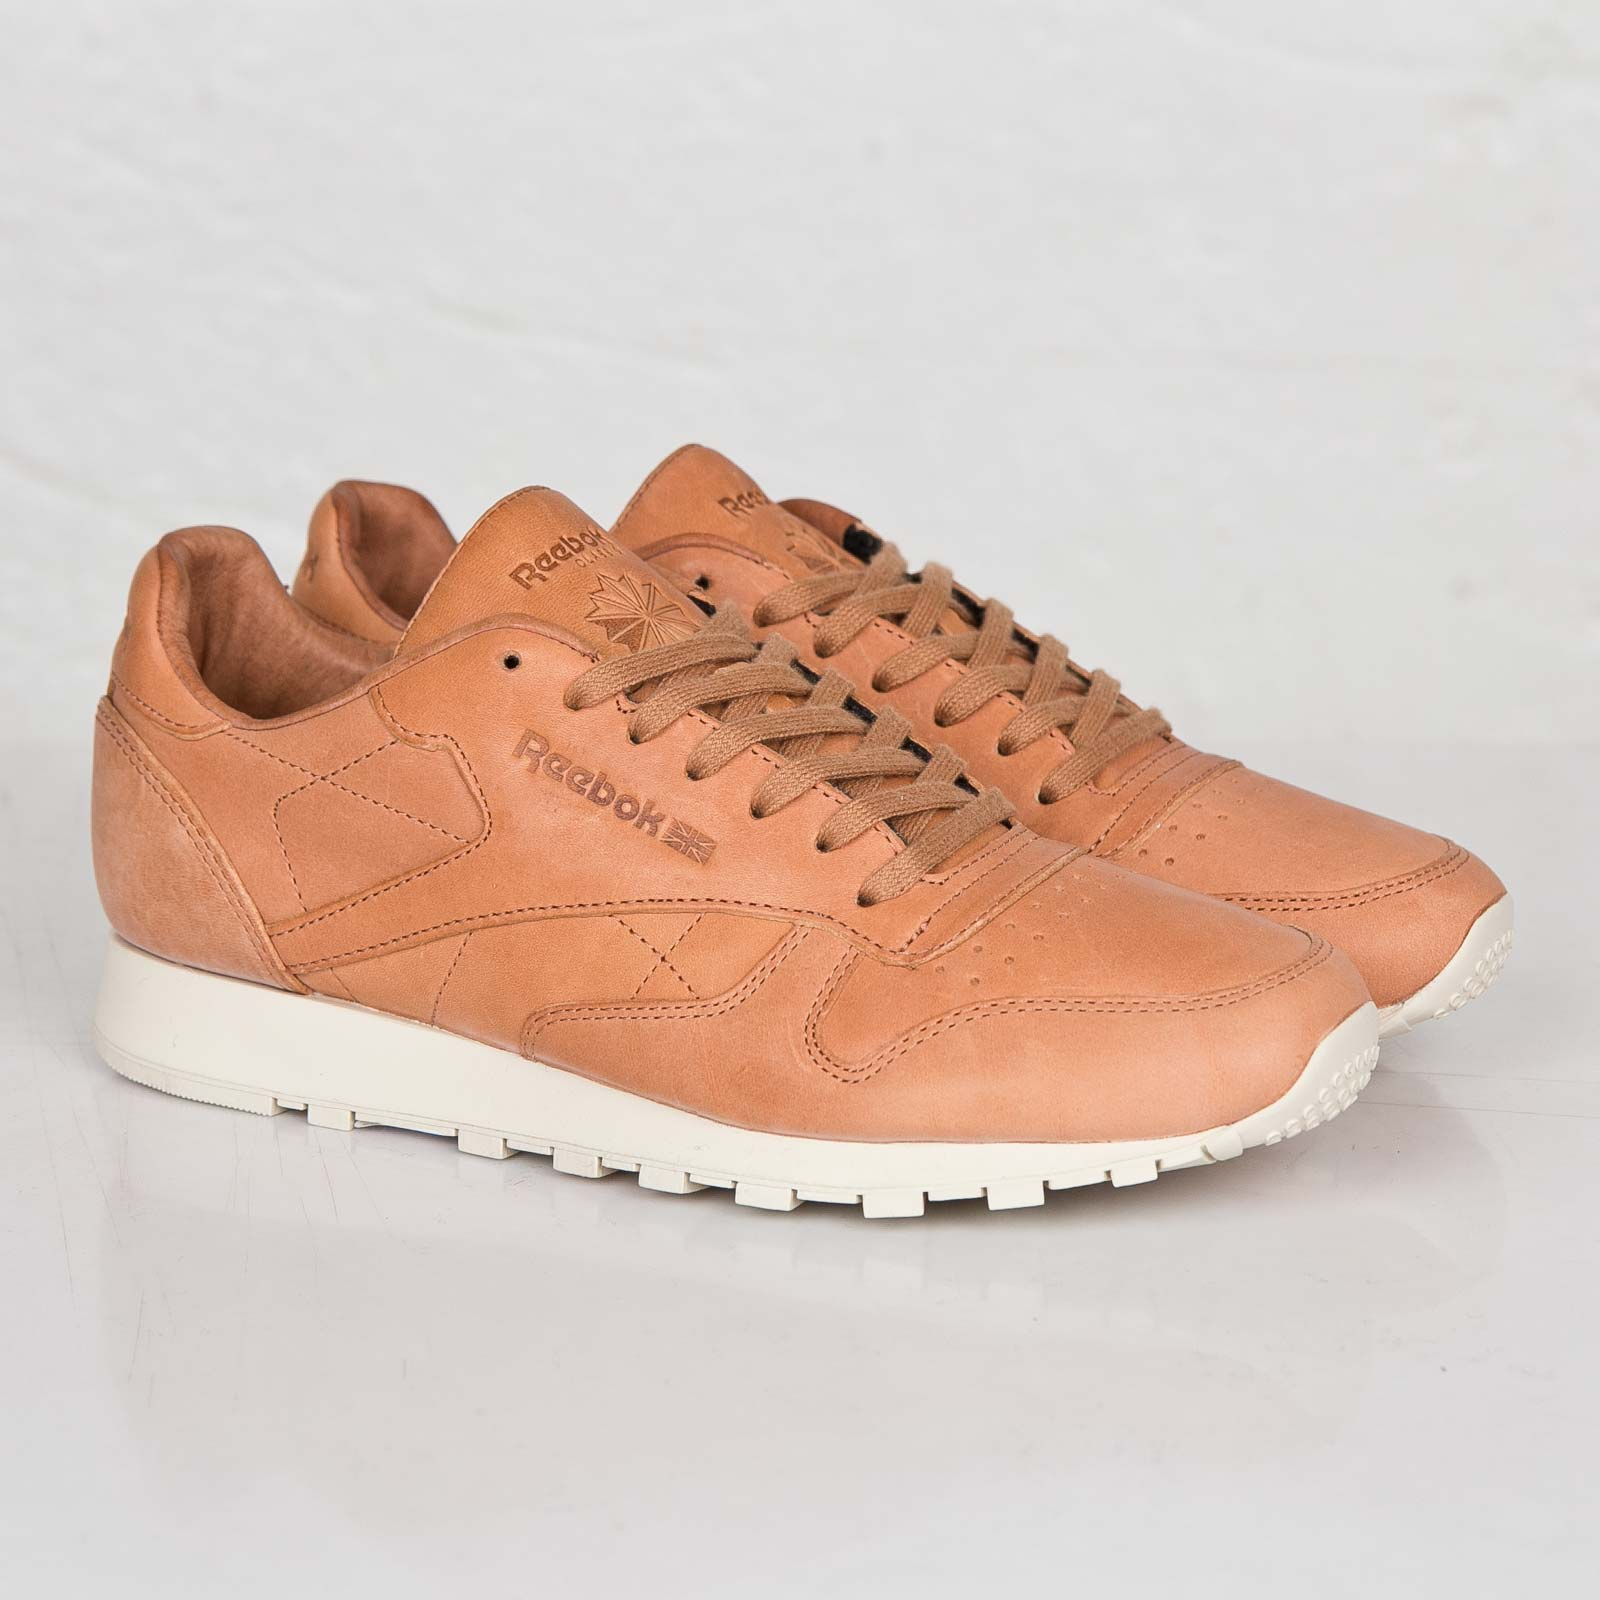 1d335d928863d Reebok Classic Leather Lux Horween - M47441 - Sneakersnstuff ...